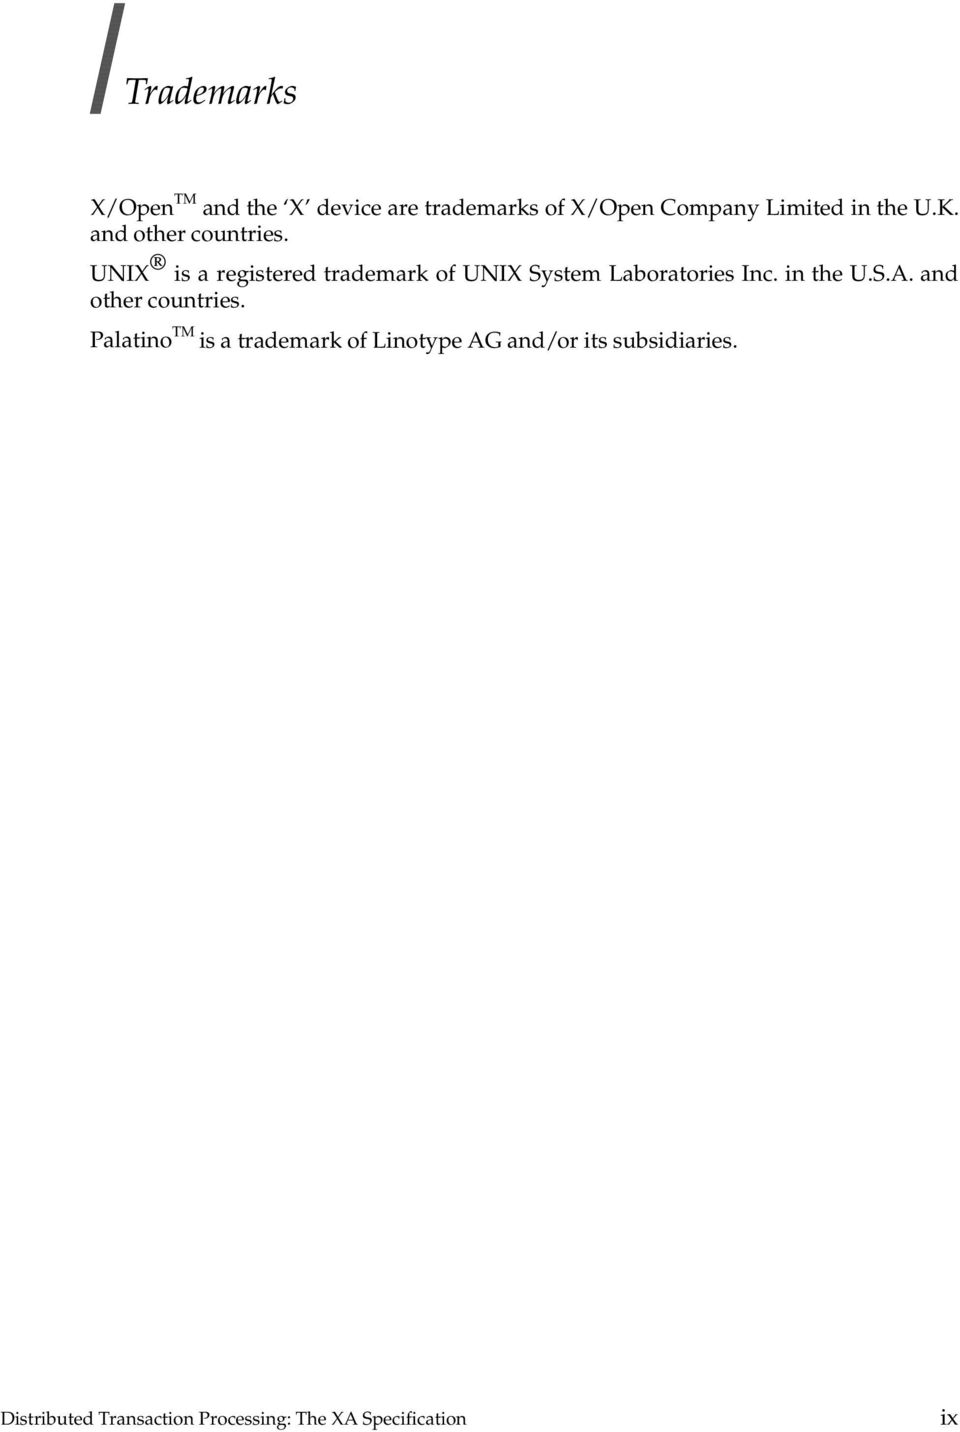 UNIX is a registered trademark of UNIX System Laboratories Inc. in the U.S.A.